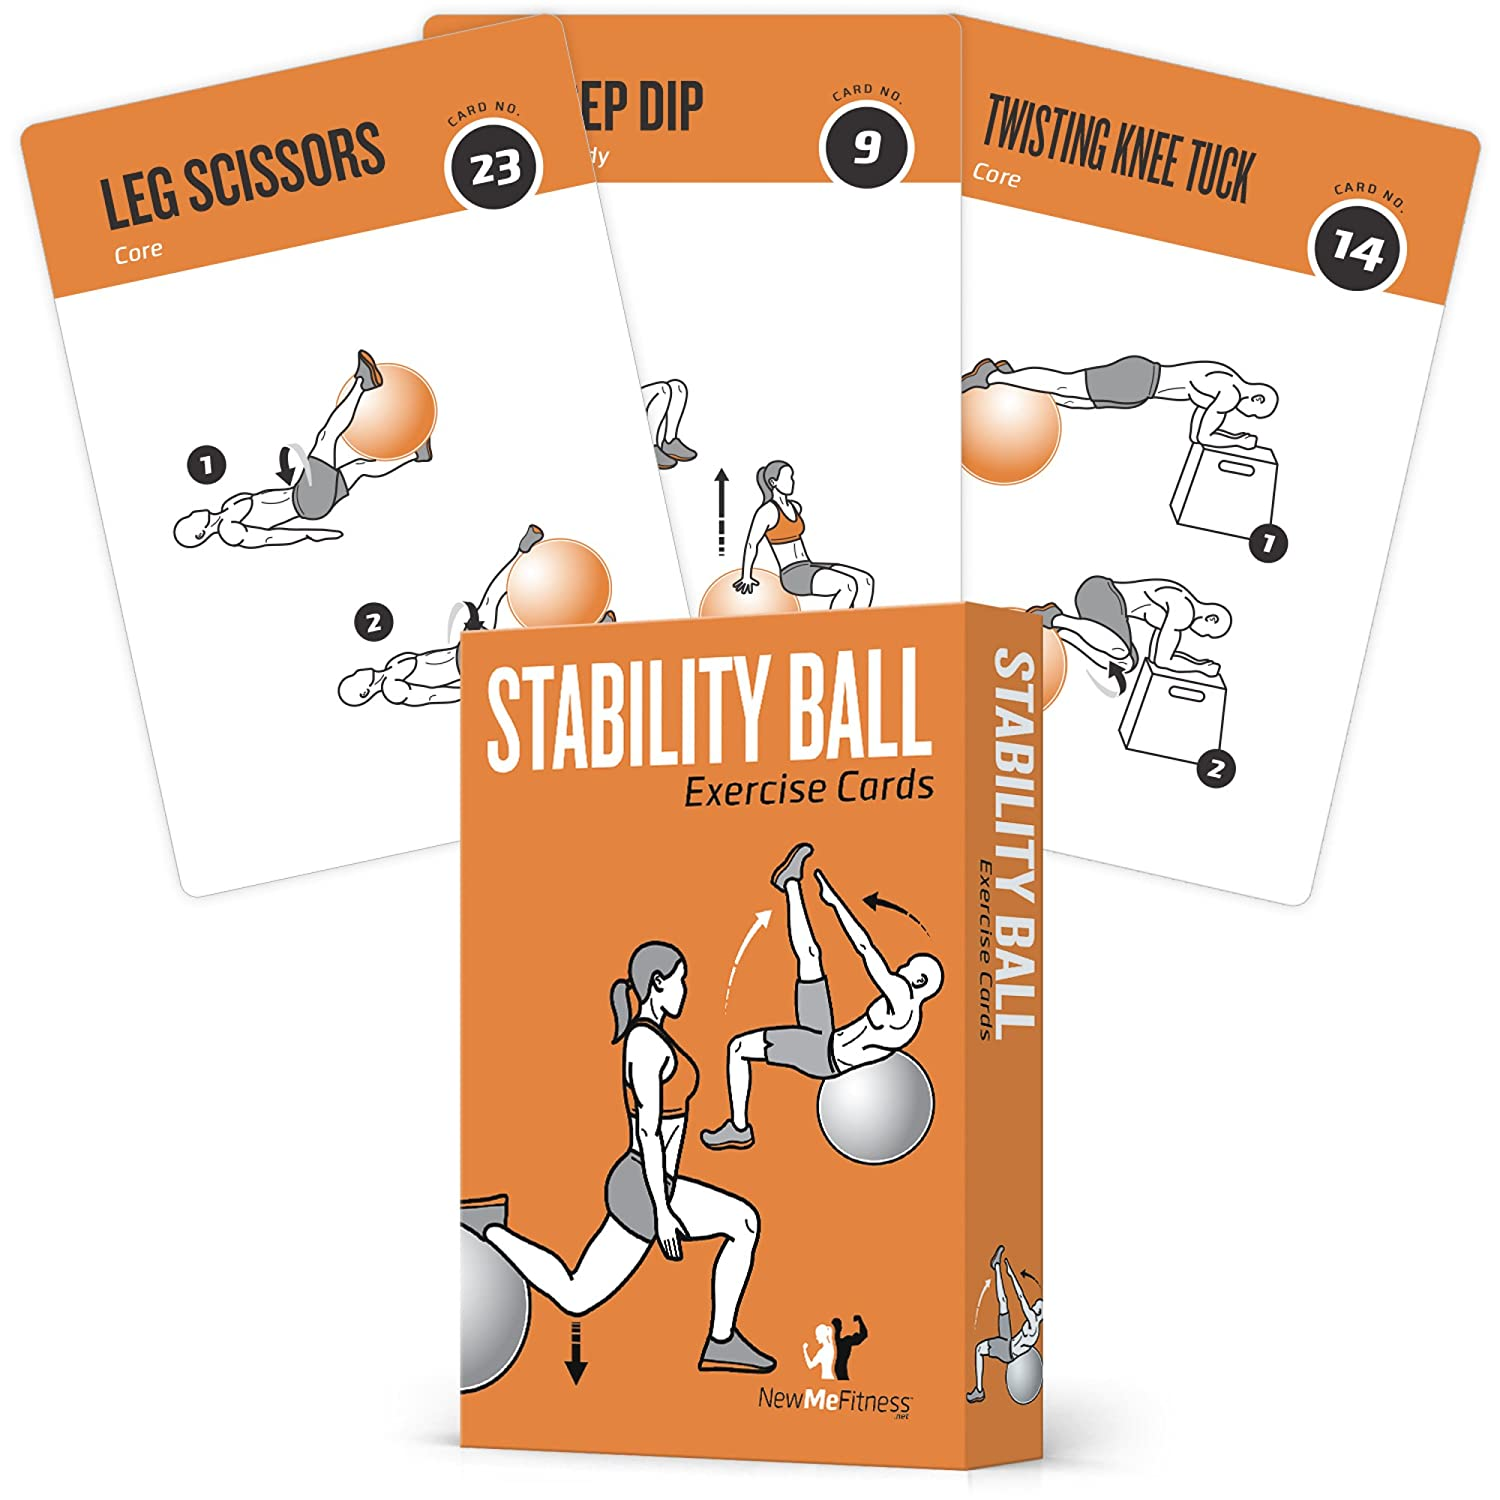 Exercise Cards Stability, Balance Ball - Includes 6, Total Body At Home Workouts : Extra Large, Waterproof, Durable with Diagrams & Instructions : Portable Fitness for Men & Women : 62 cards NewMe Fitness